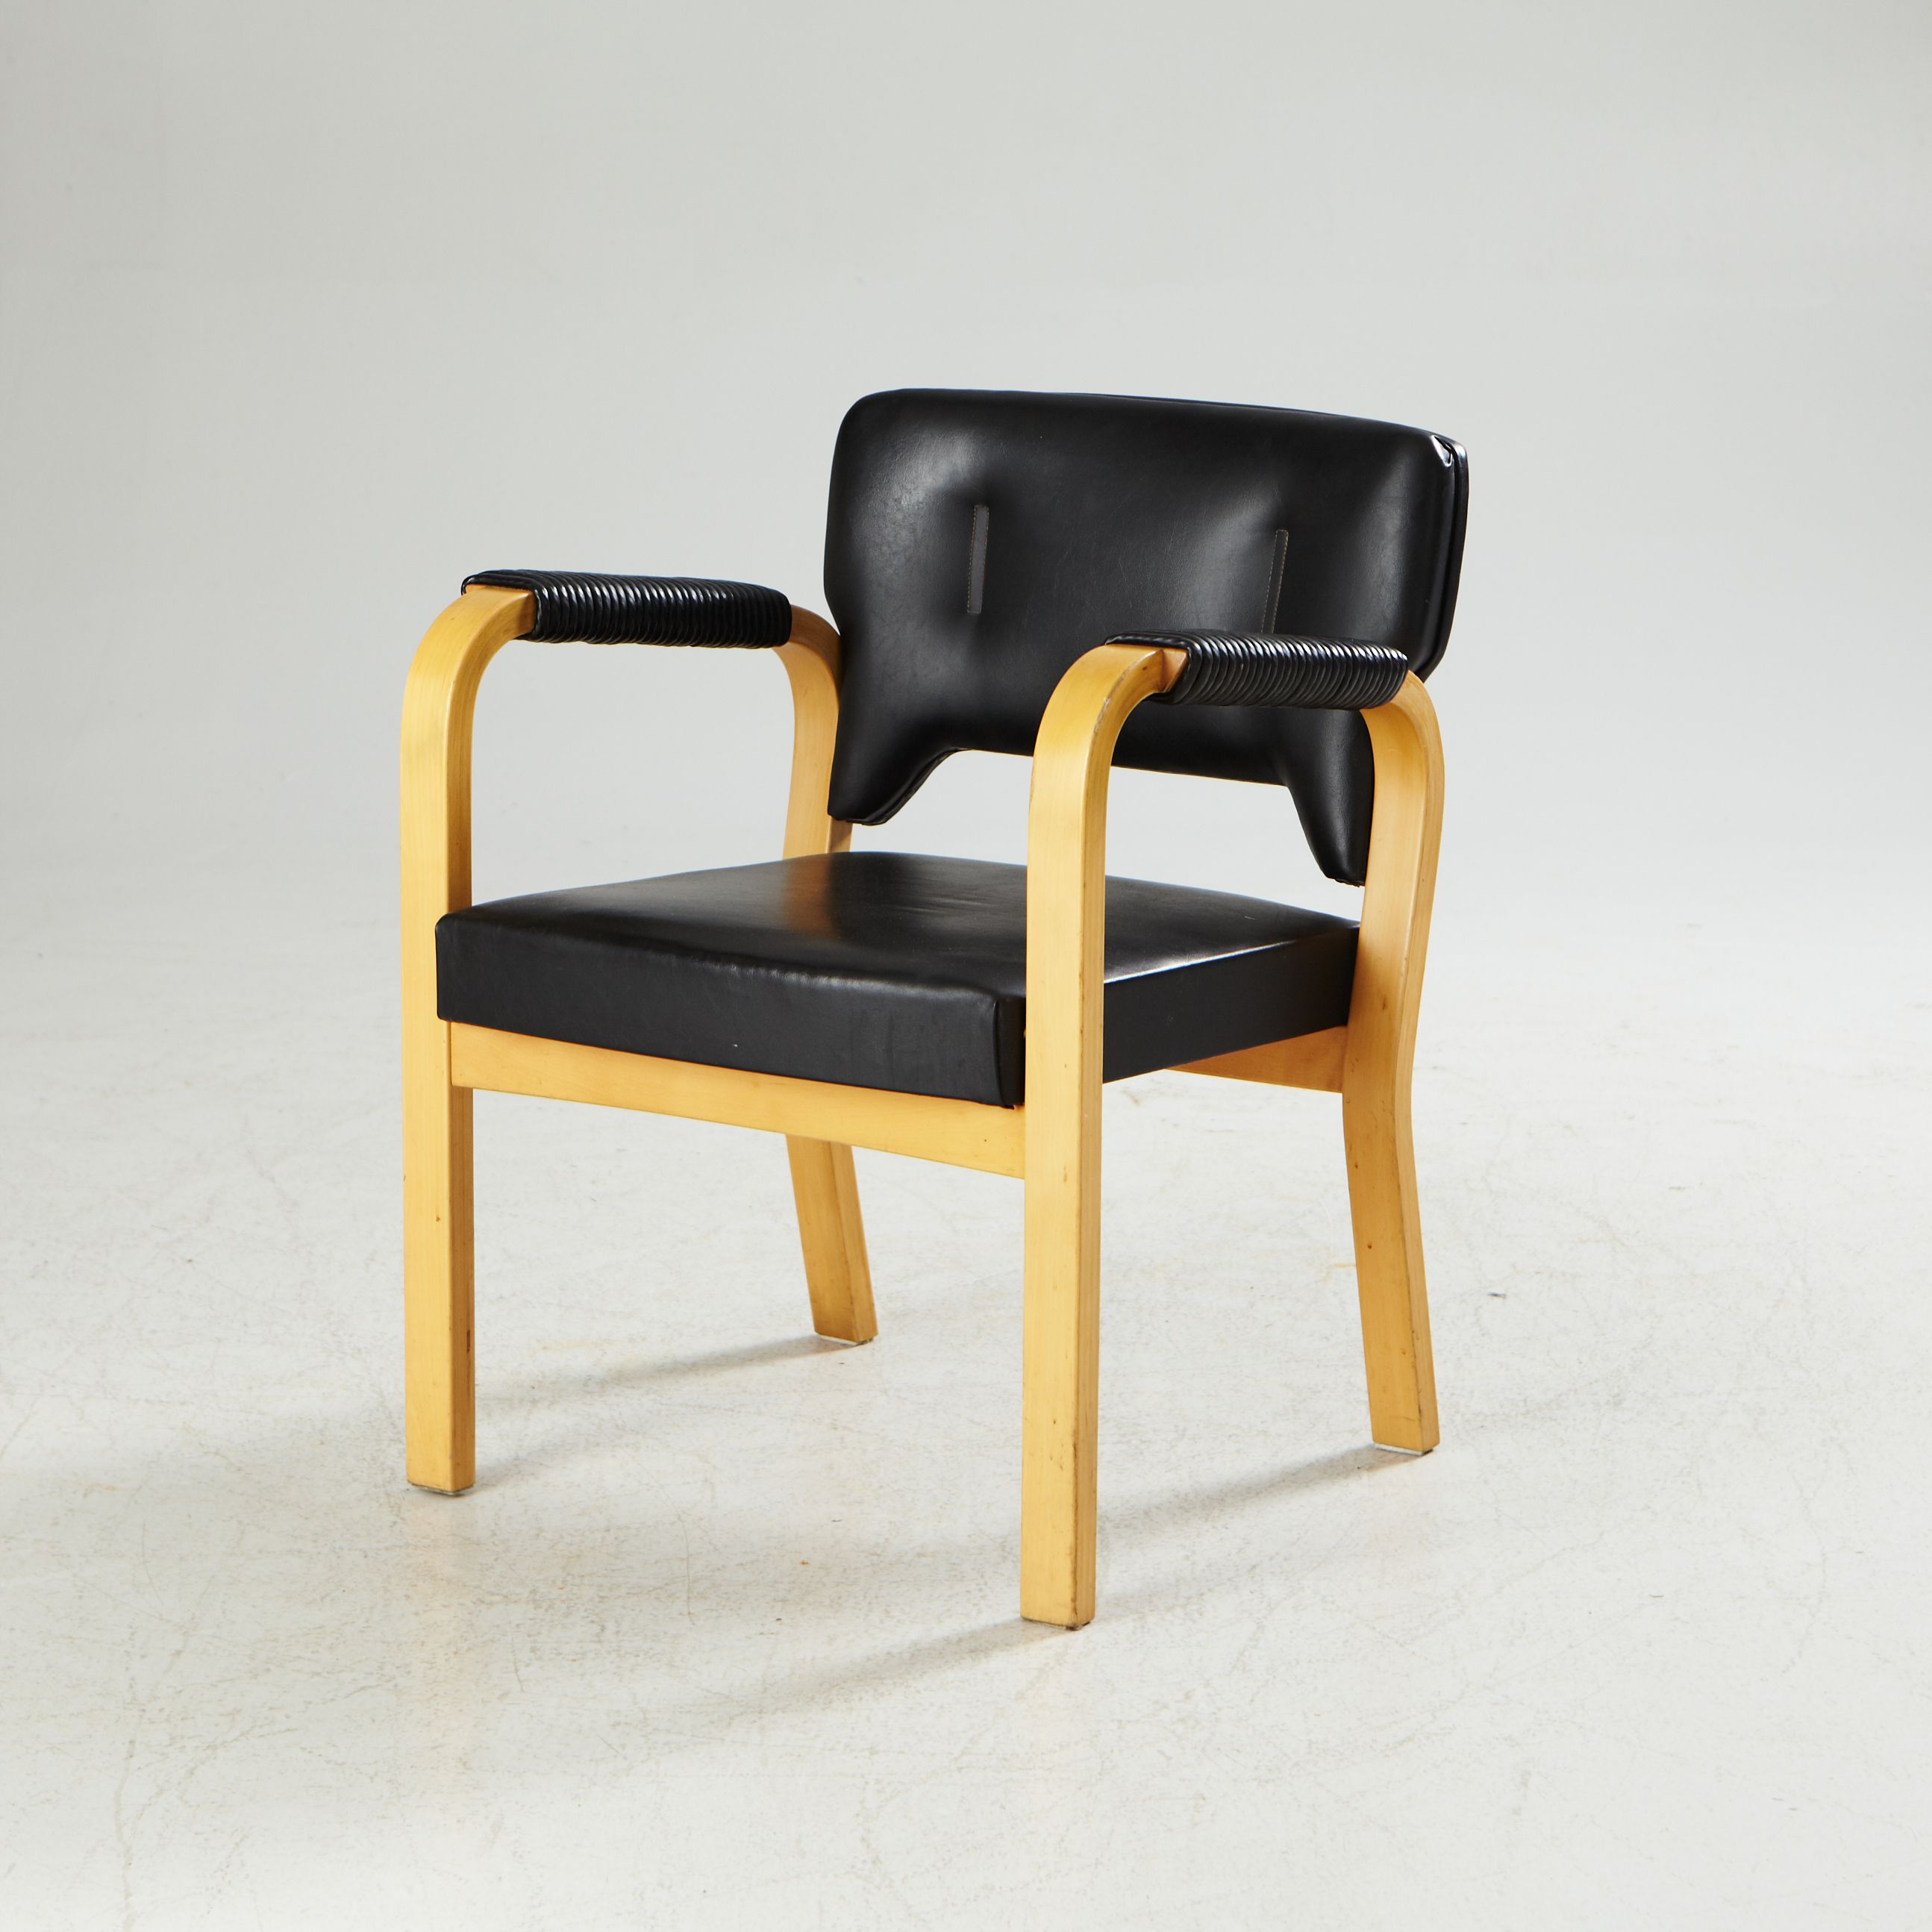 Alvar Aalto #46 Birch And Leather Chair For Artek, 1947